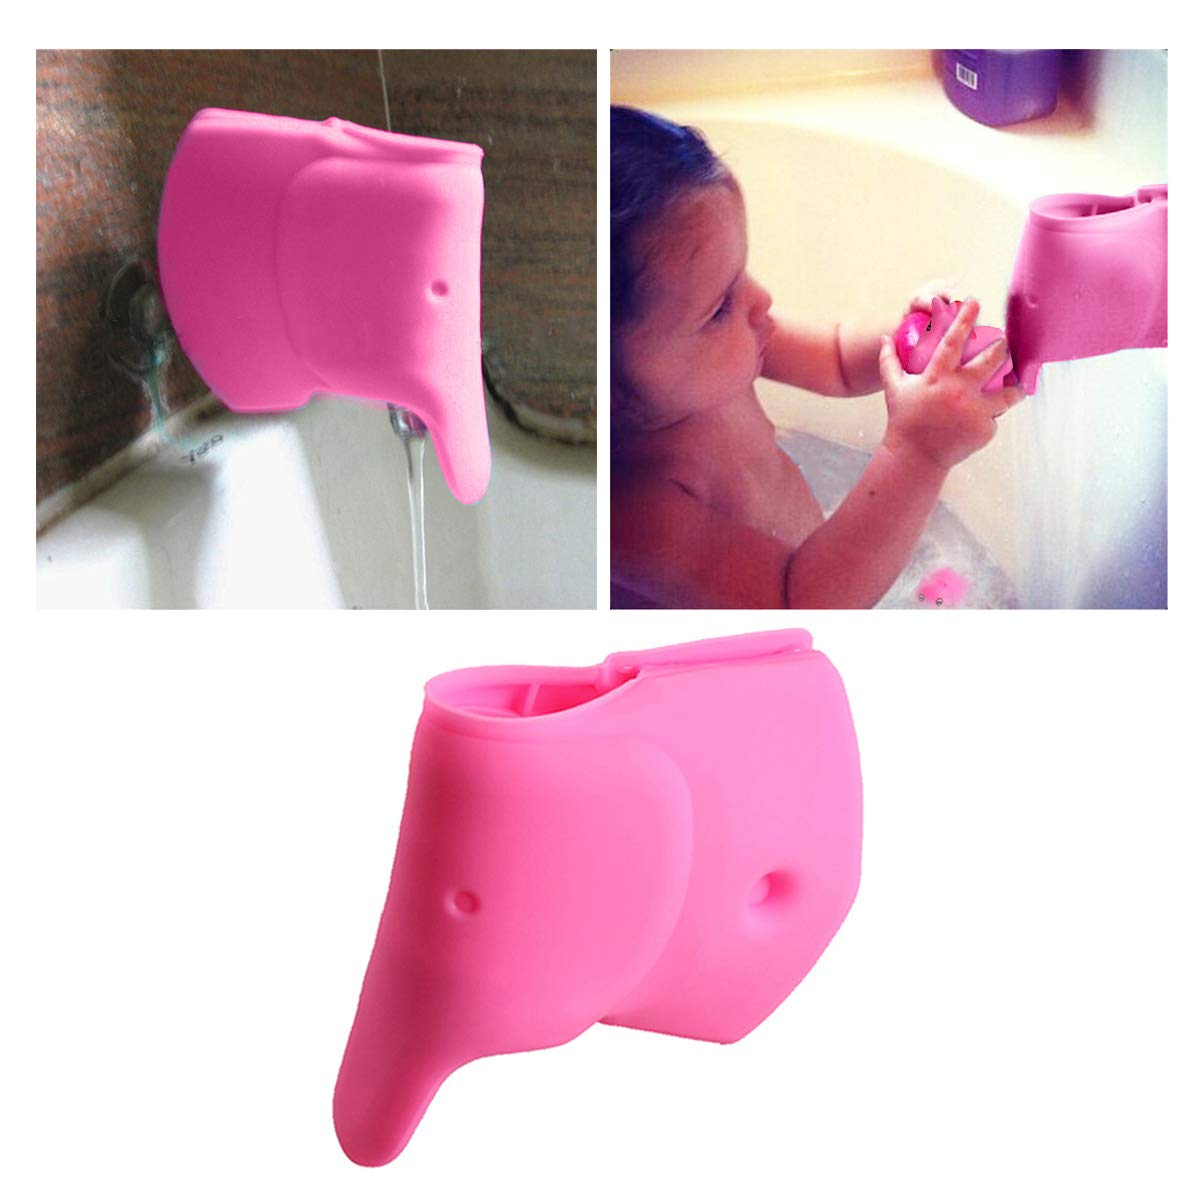 Tub Faucet Cover for Baby - Bathtub Spout Cover for Kids - Bath Faucet Extender for Babies - Child Bathroom Accessories Faucet Protector - Soft Silicone Spout Cover Pink Sea Lions iHG